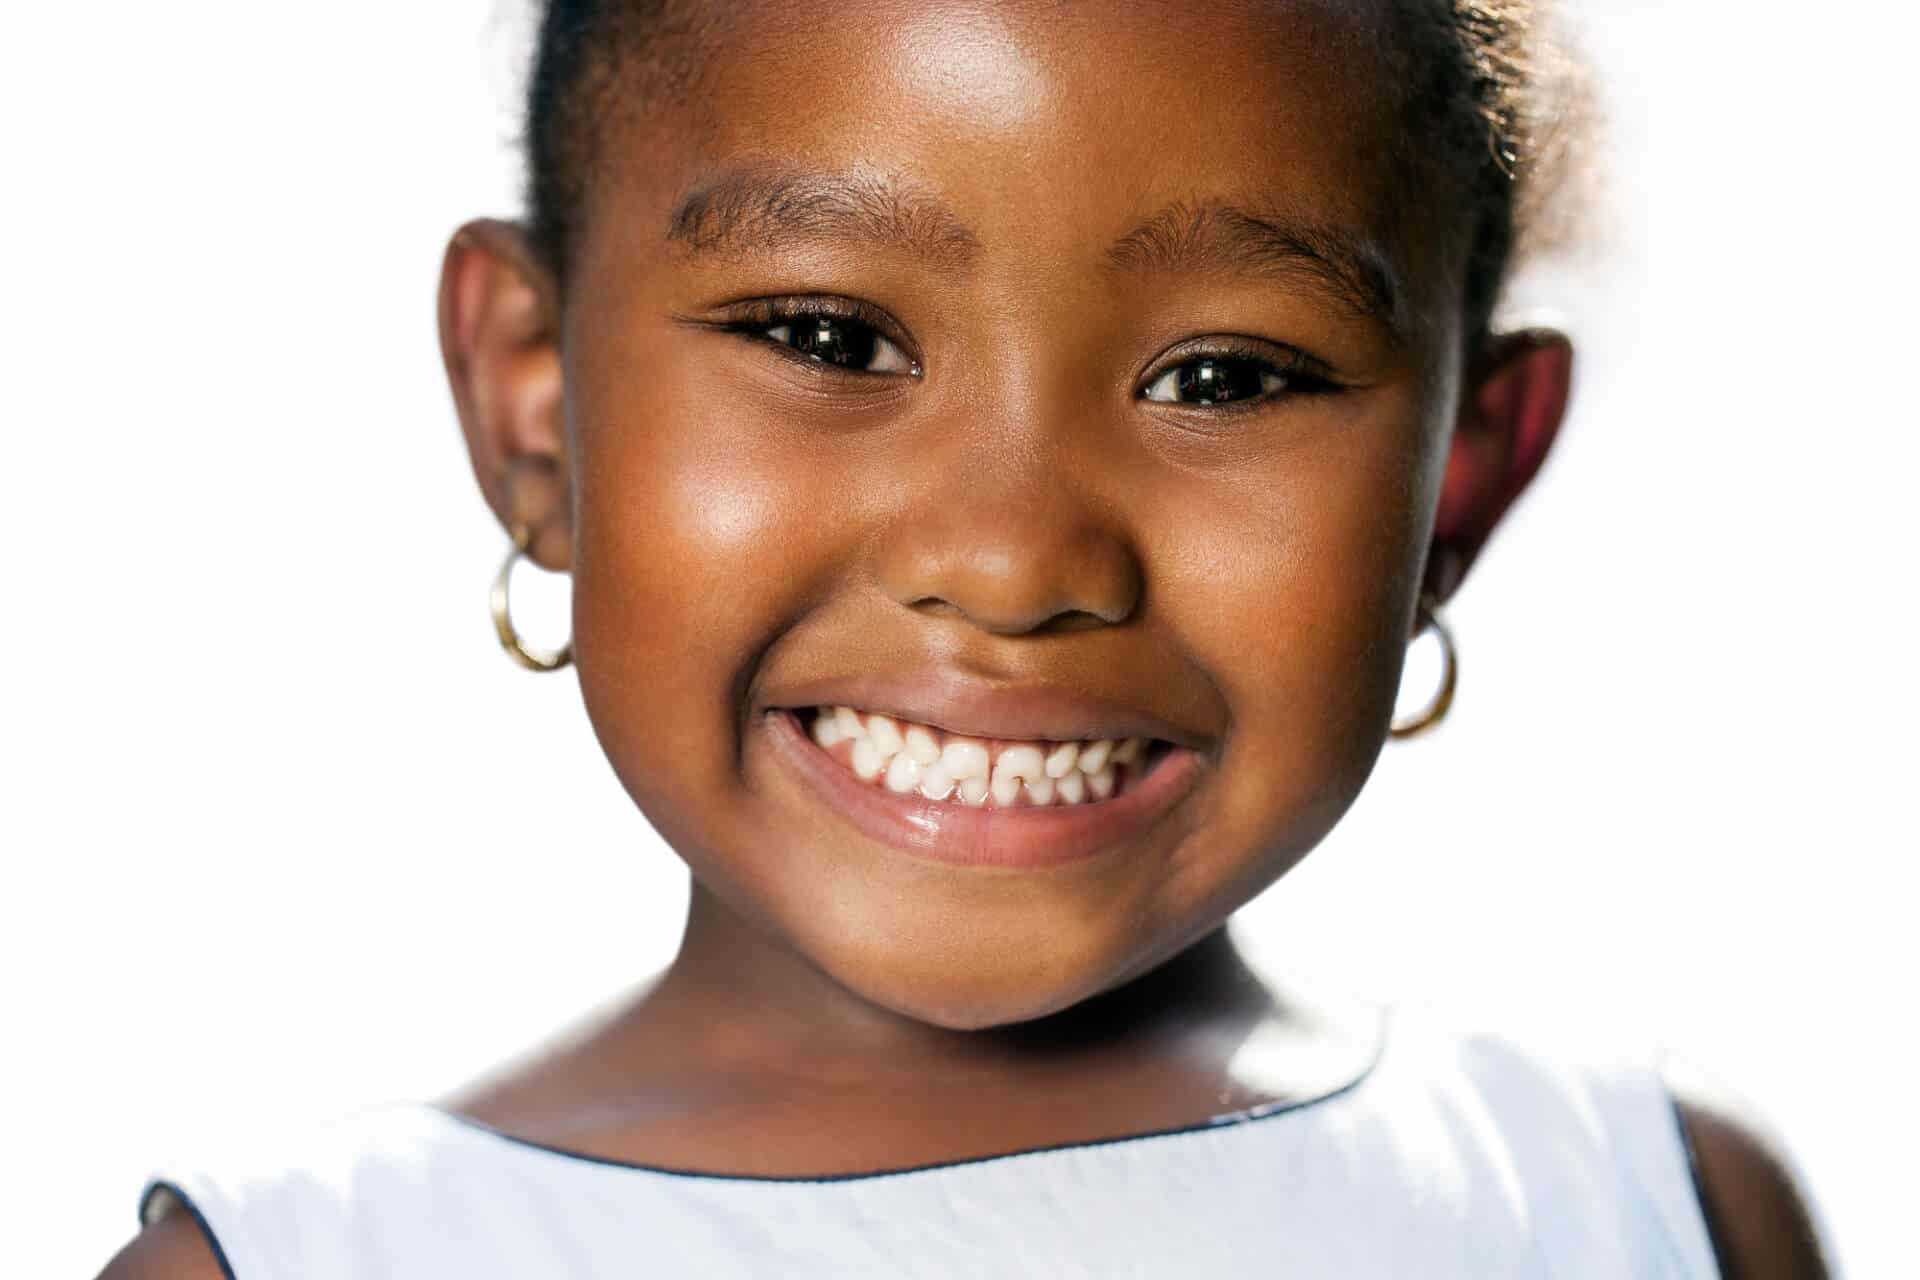 How does Boca Raton children's dentistry say to start a child with flossing?